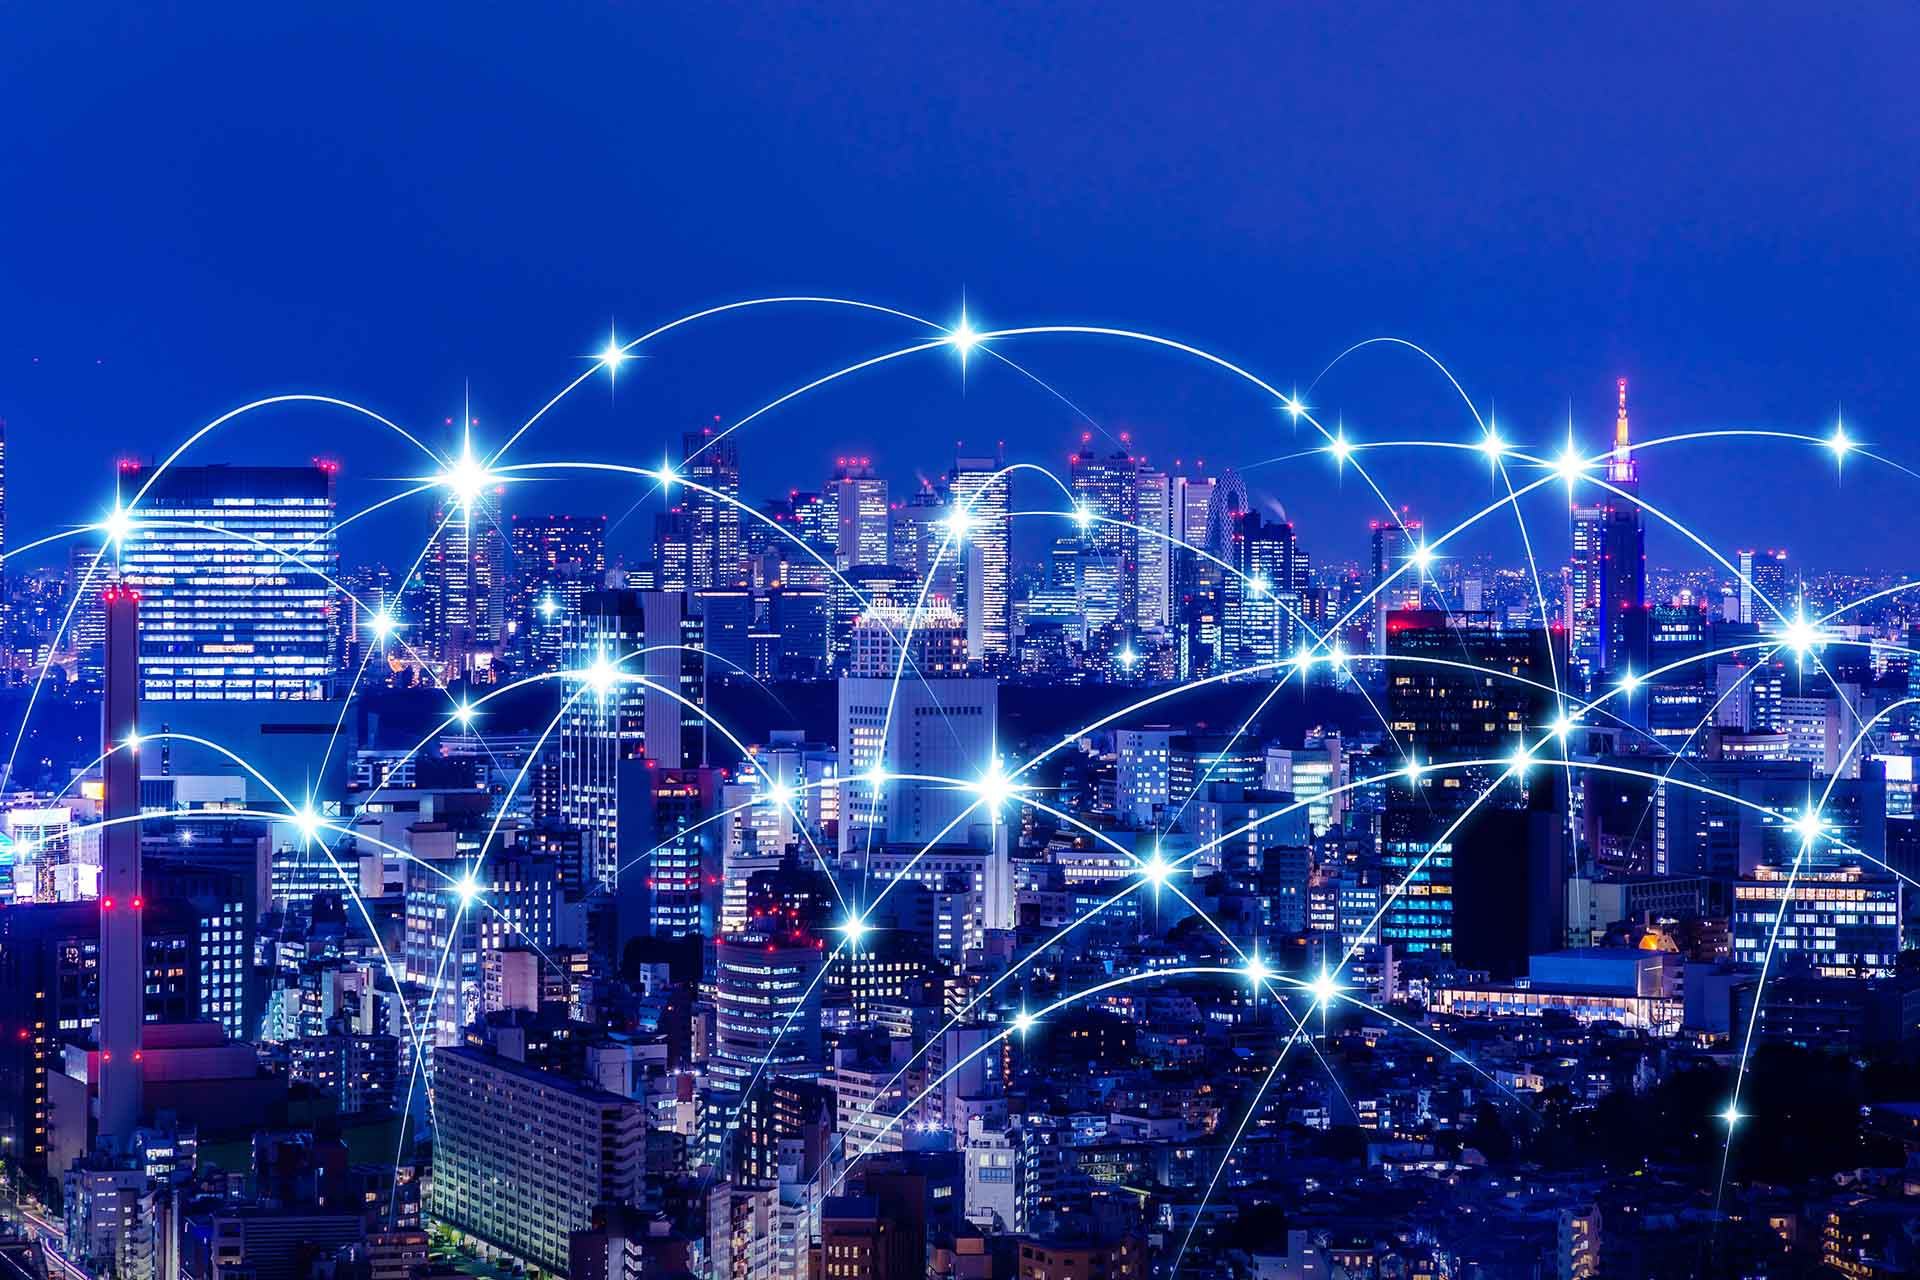 ict connected city iot.jpg